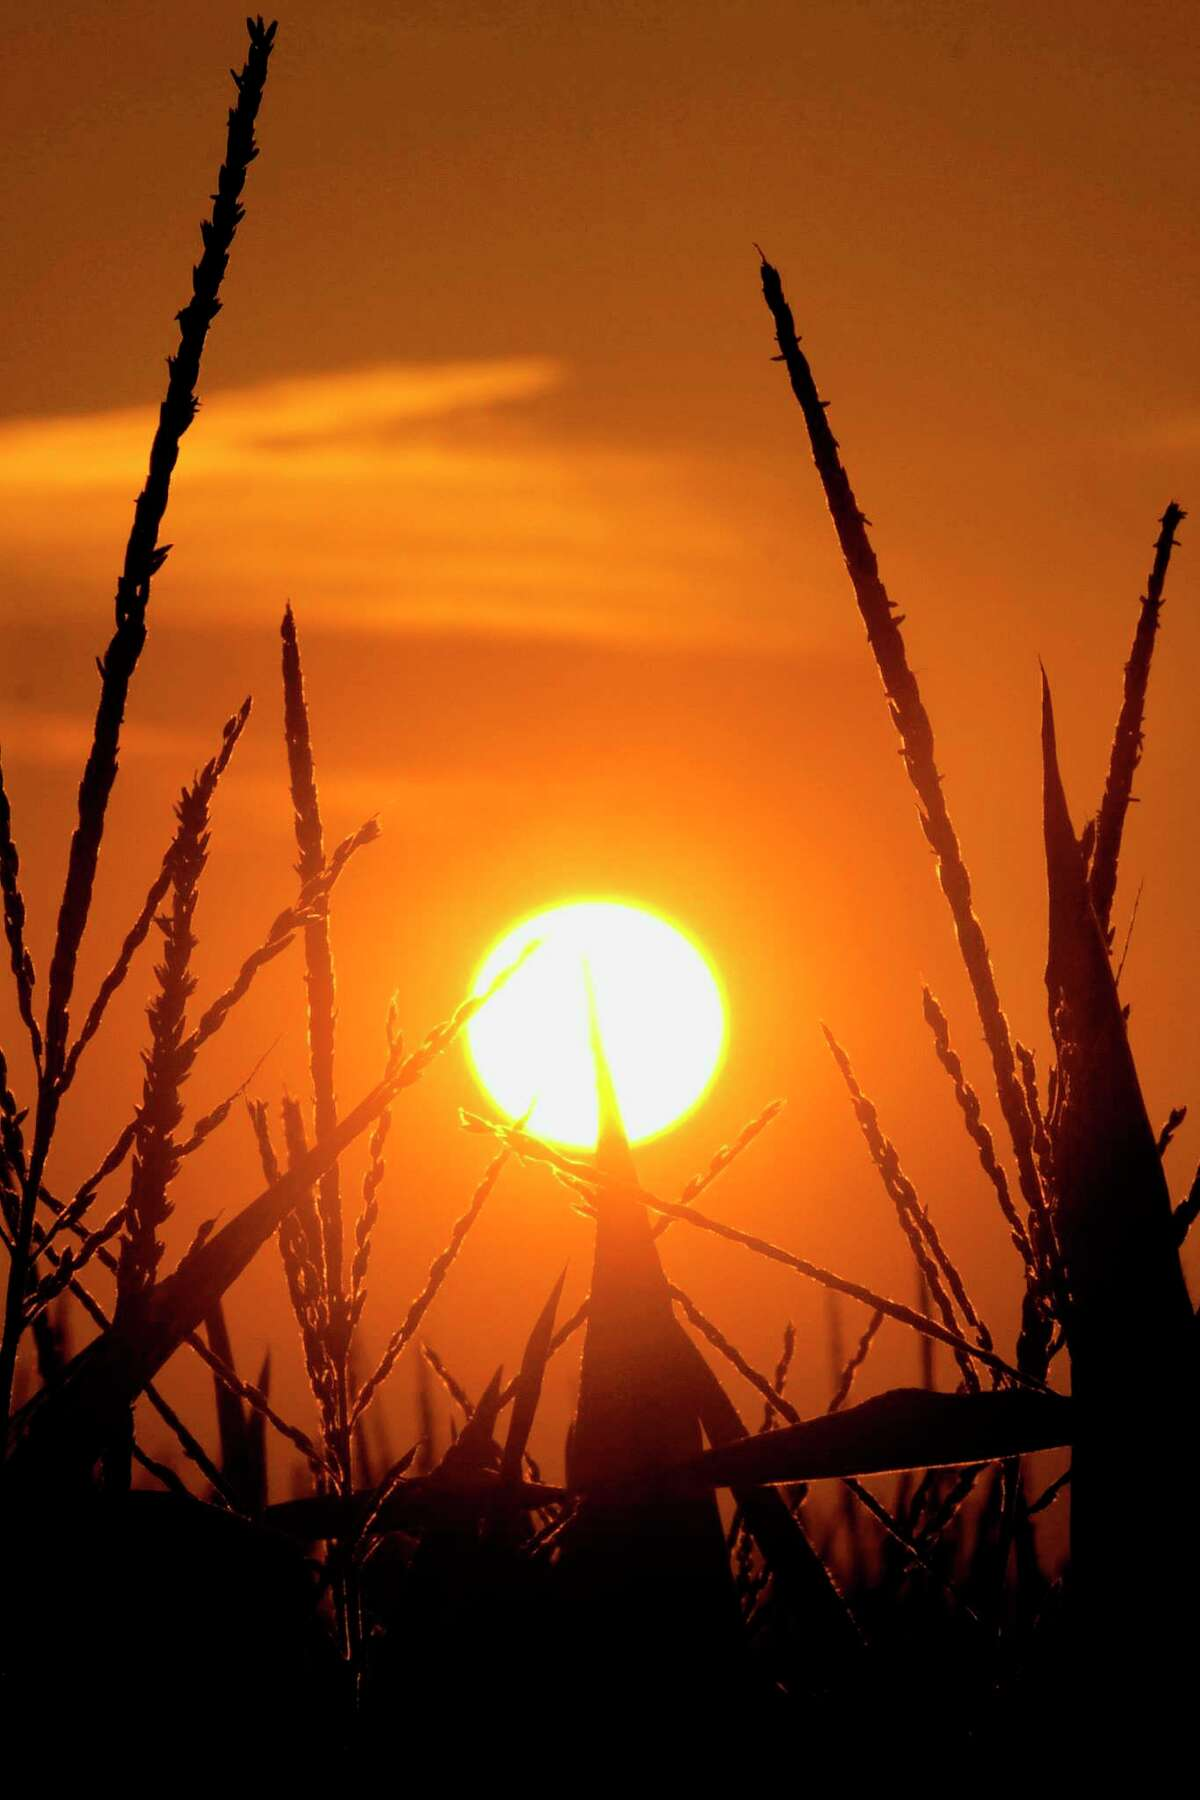 ADVANCE FOR USE TUESDAY, MARCH 19, 2019 AND THEREAFTER-FILE - In this July 15, 2012 file photo, the sun rises over corn stalks in Pleasant Plains, Ill., during a drought. An AP data analysis of records from 1999-2019 shows that in weather stations across America, hot records are being set twice as often as cold ones.